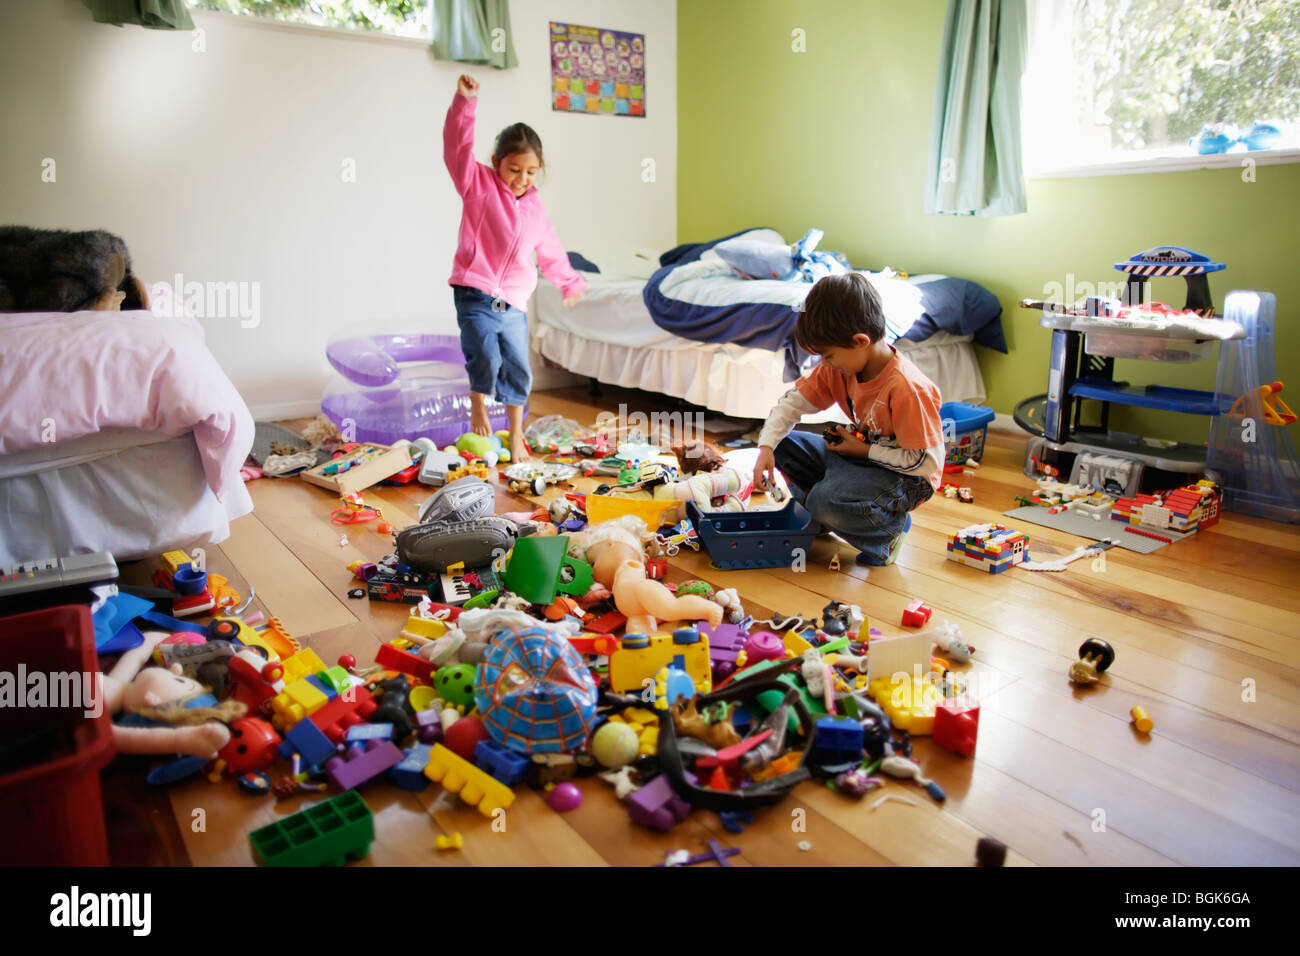 Brother and sister in their bedroom - Stock Image